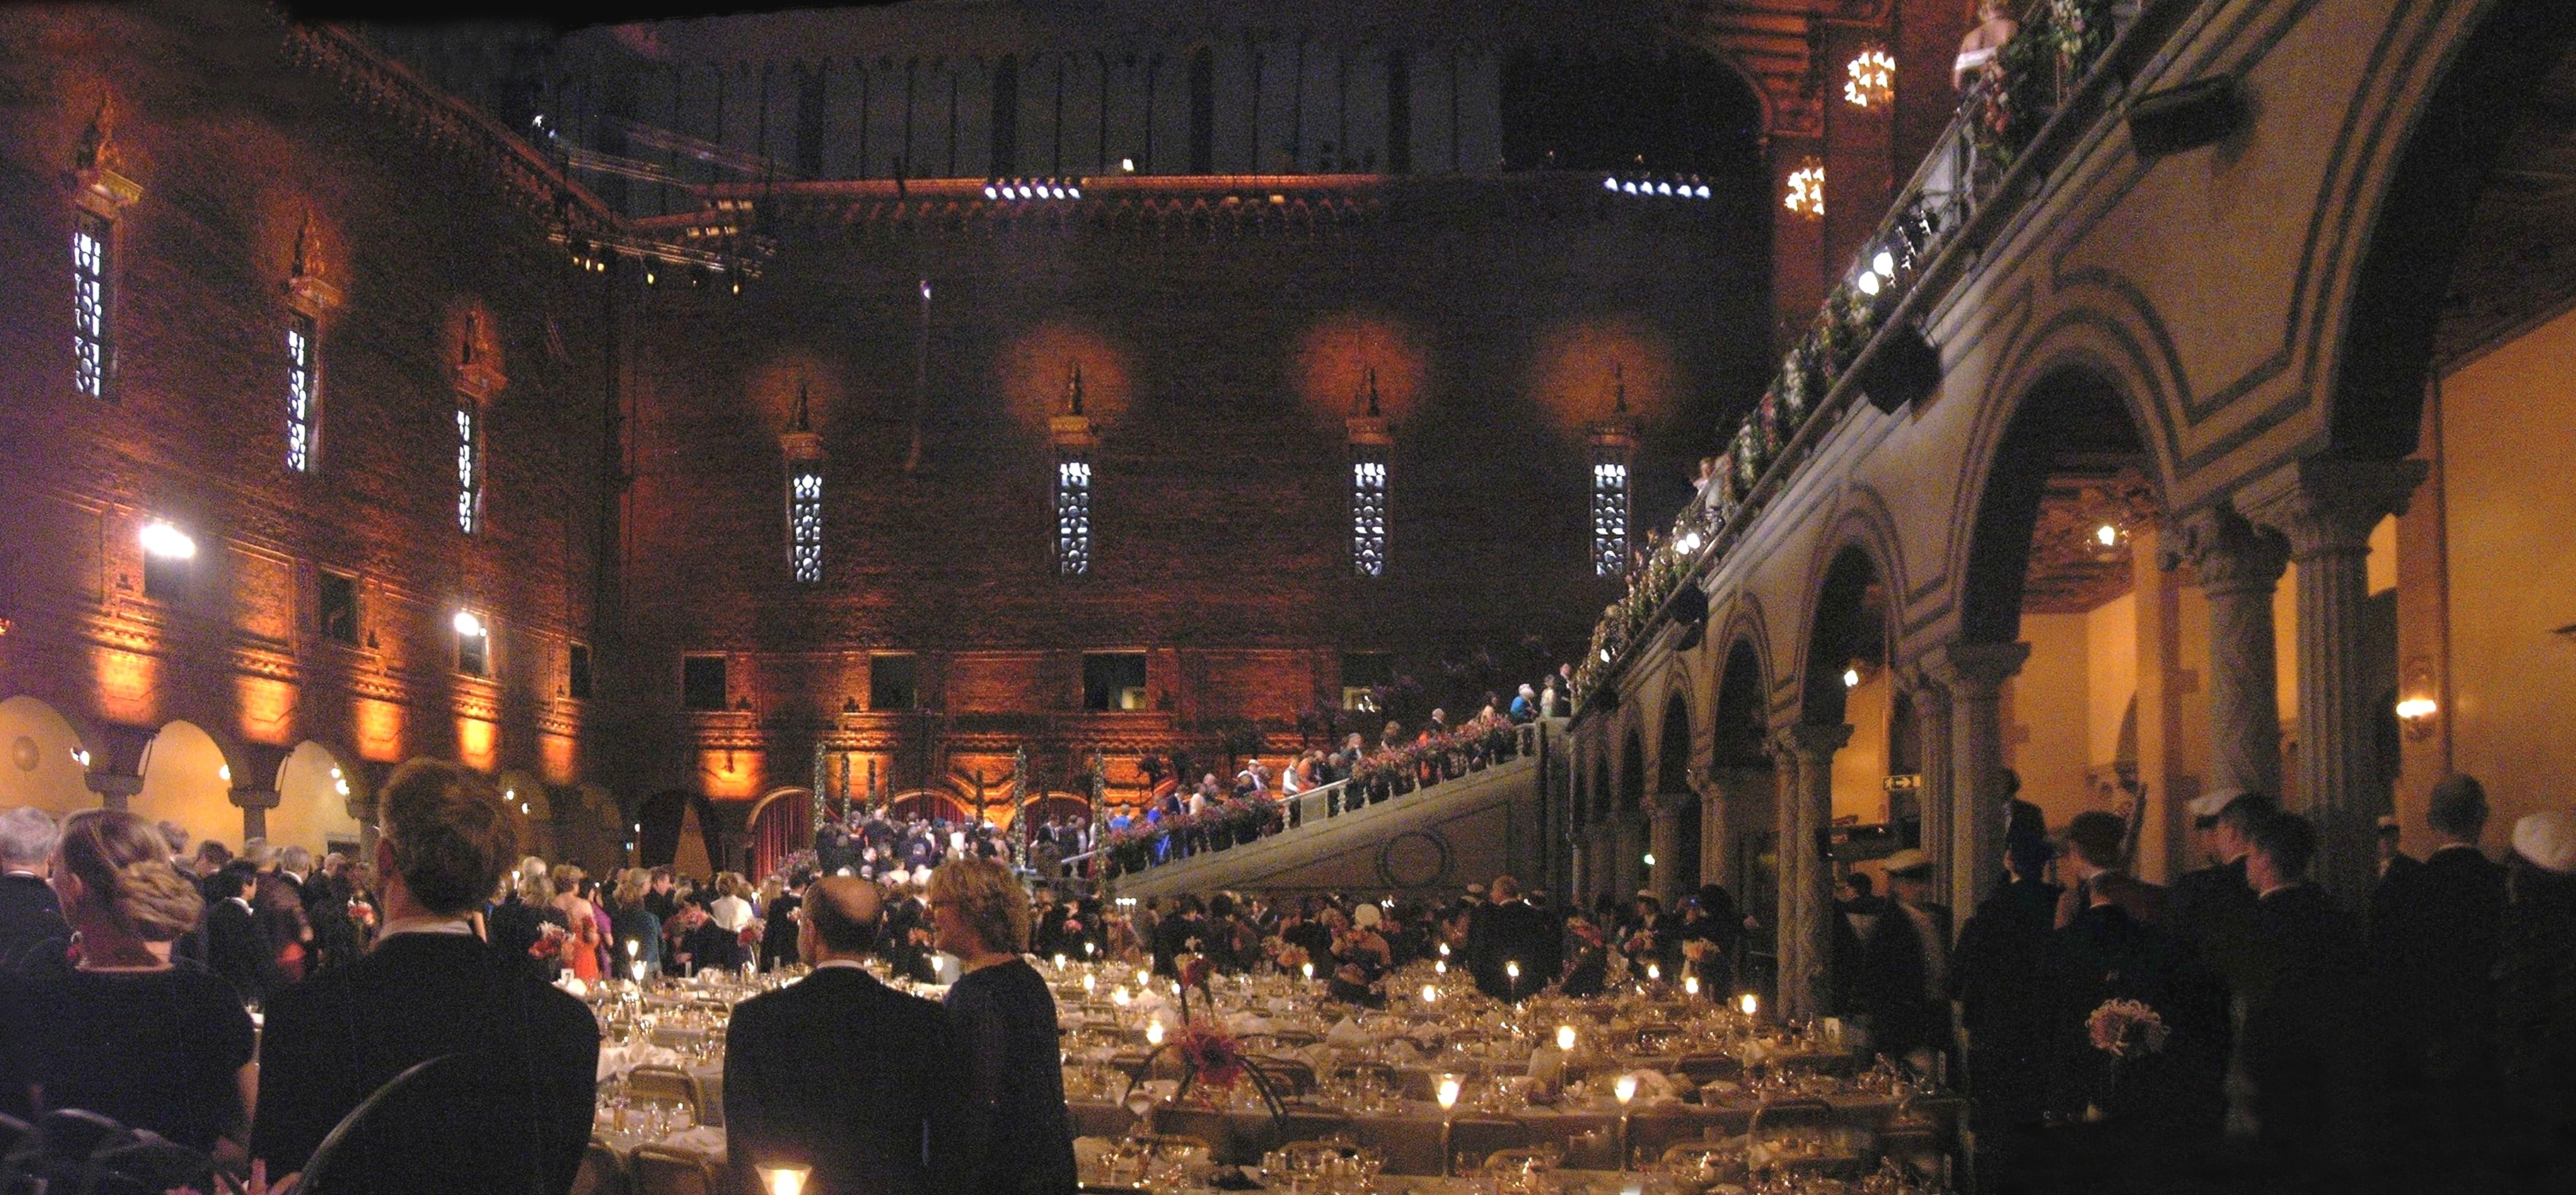 Panoramic shot of the Nobel Prize Banquet. Image Credit: Wikimiedia Commons